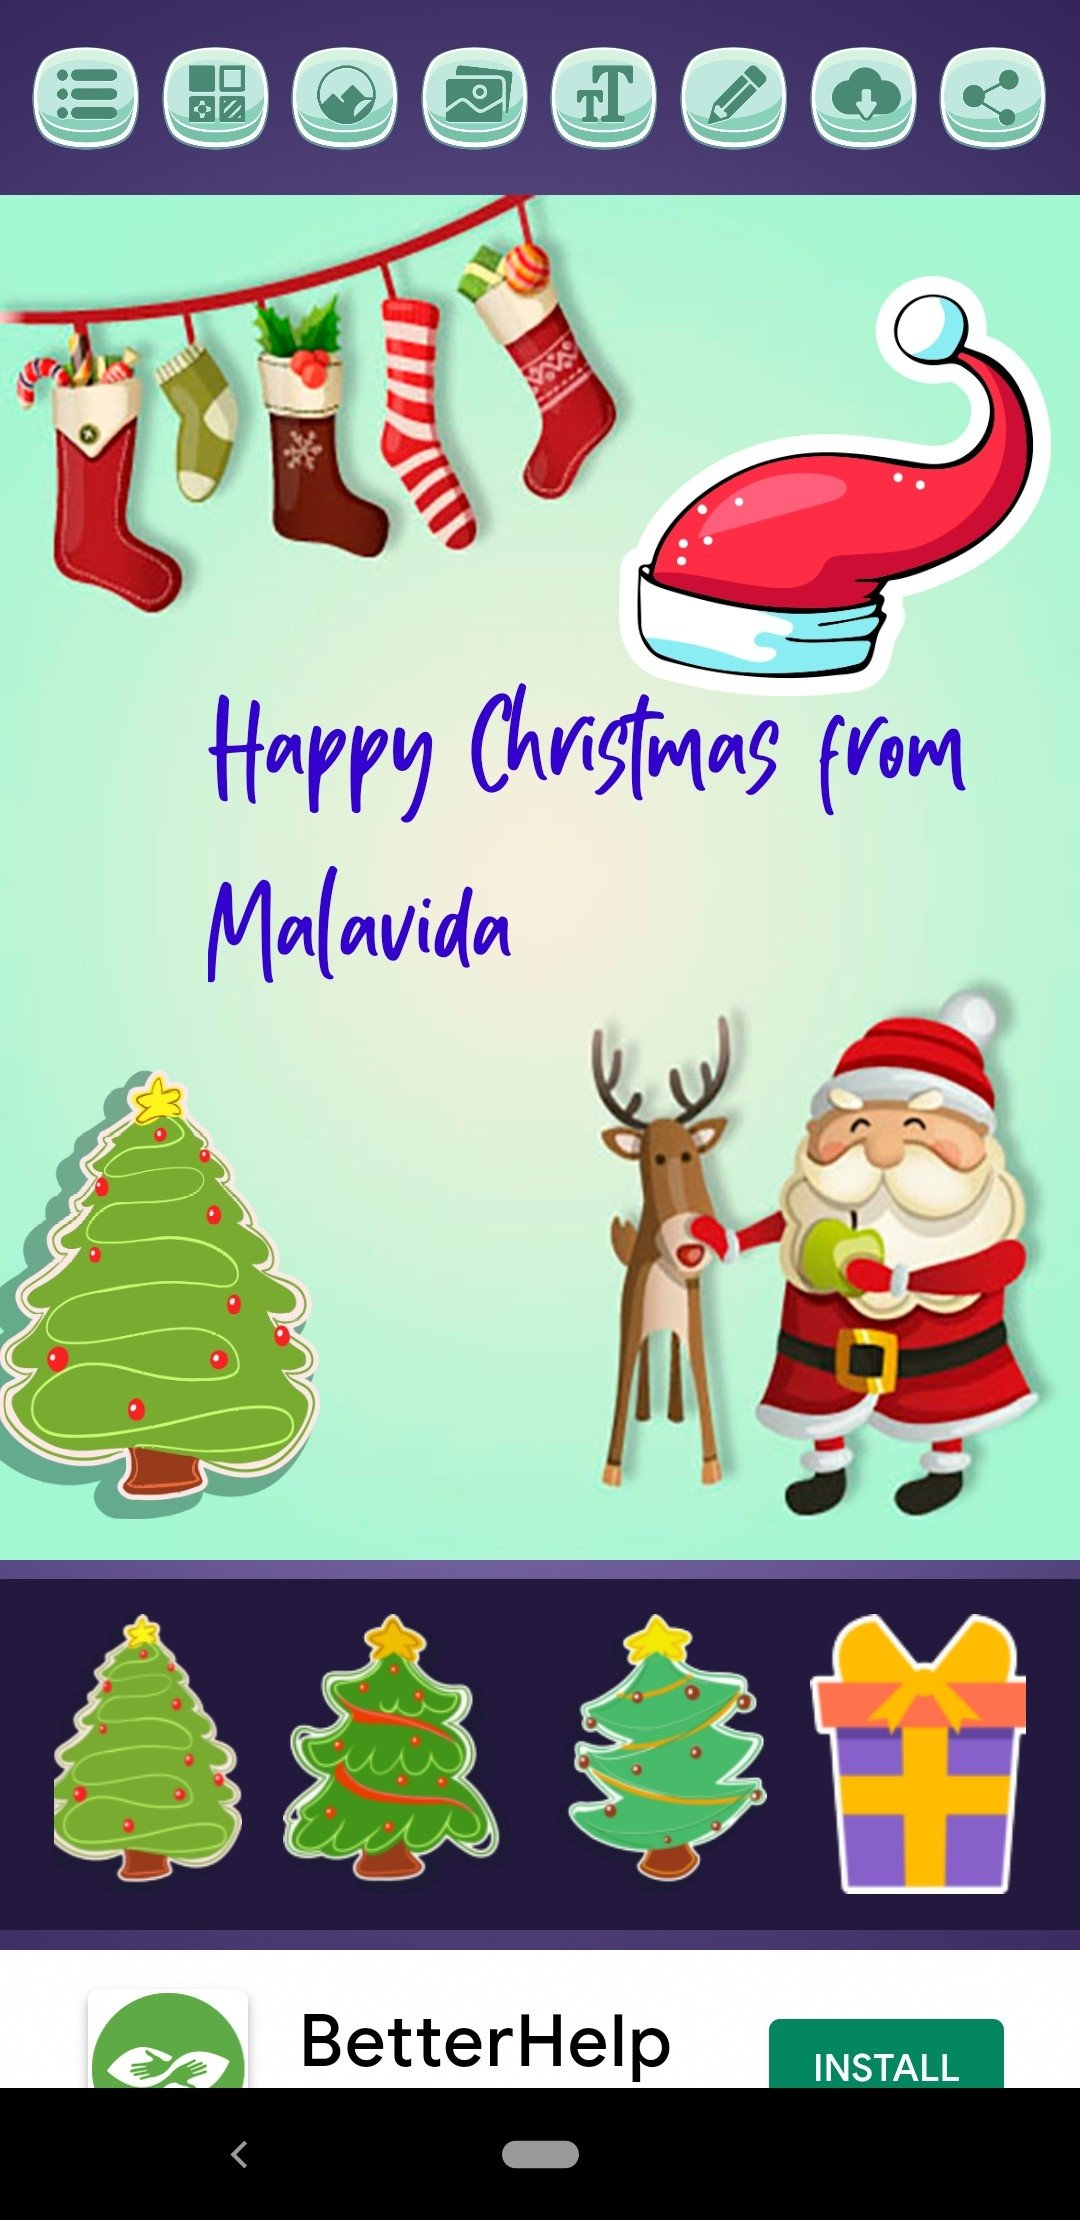 create christmas cards image 5 thumbnail - Create Christmas Cards